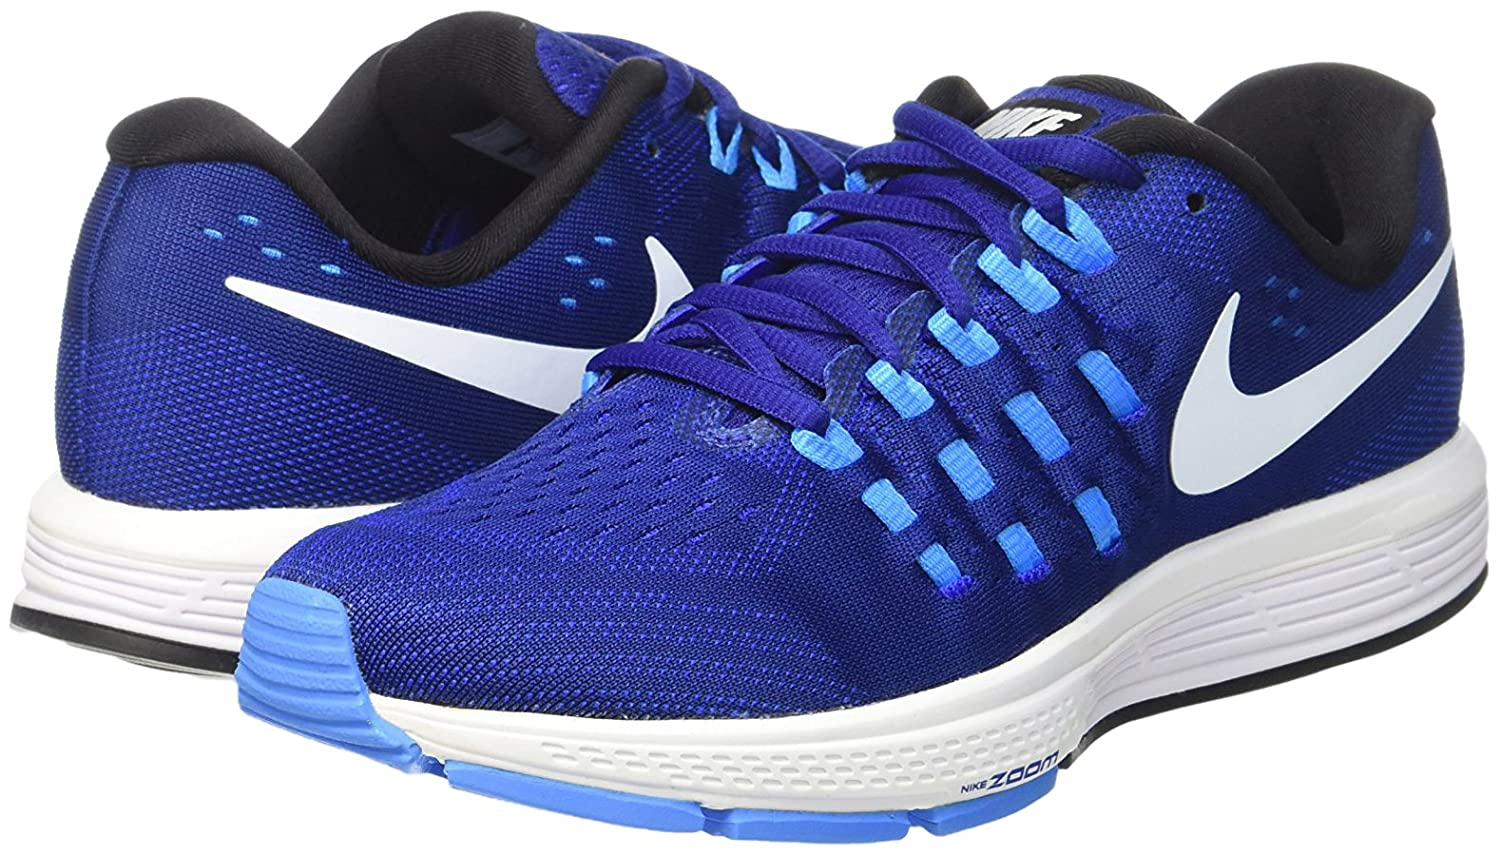 Amazon.com | Nike Air Zoom Vomero 11 Deep Royal Royal Blue/White/Blue  Glow/Black Women's Running Shoes Size 7.5 | Road Running